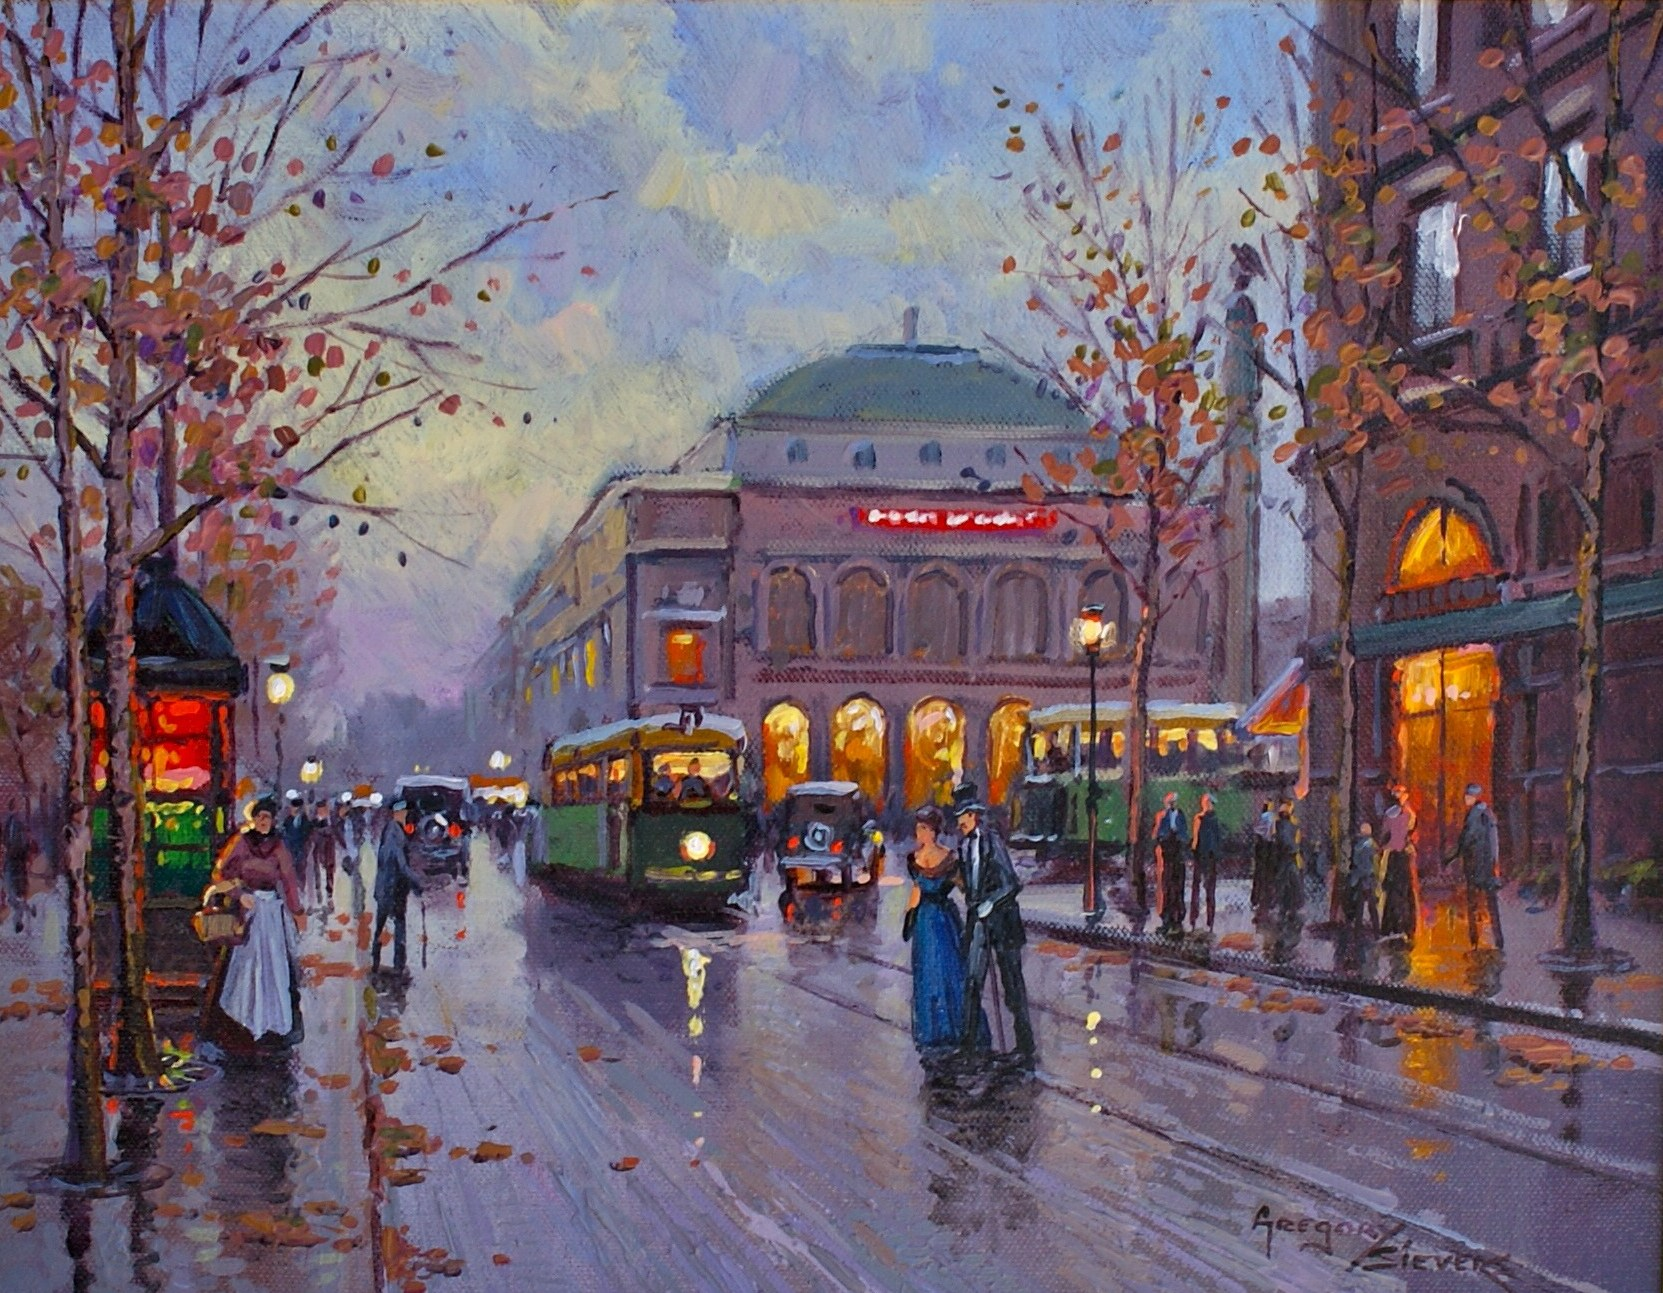 Artist: Gregory Seivers Title: Rue de Paris Size: 11in x 14in Framed: Yes Medium: Oil on canvas